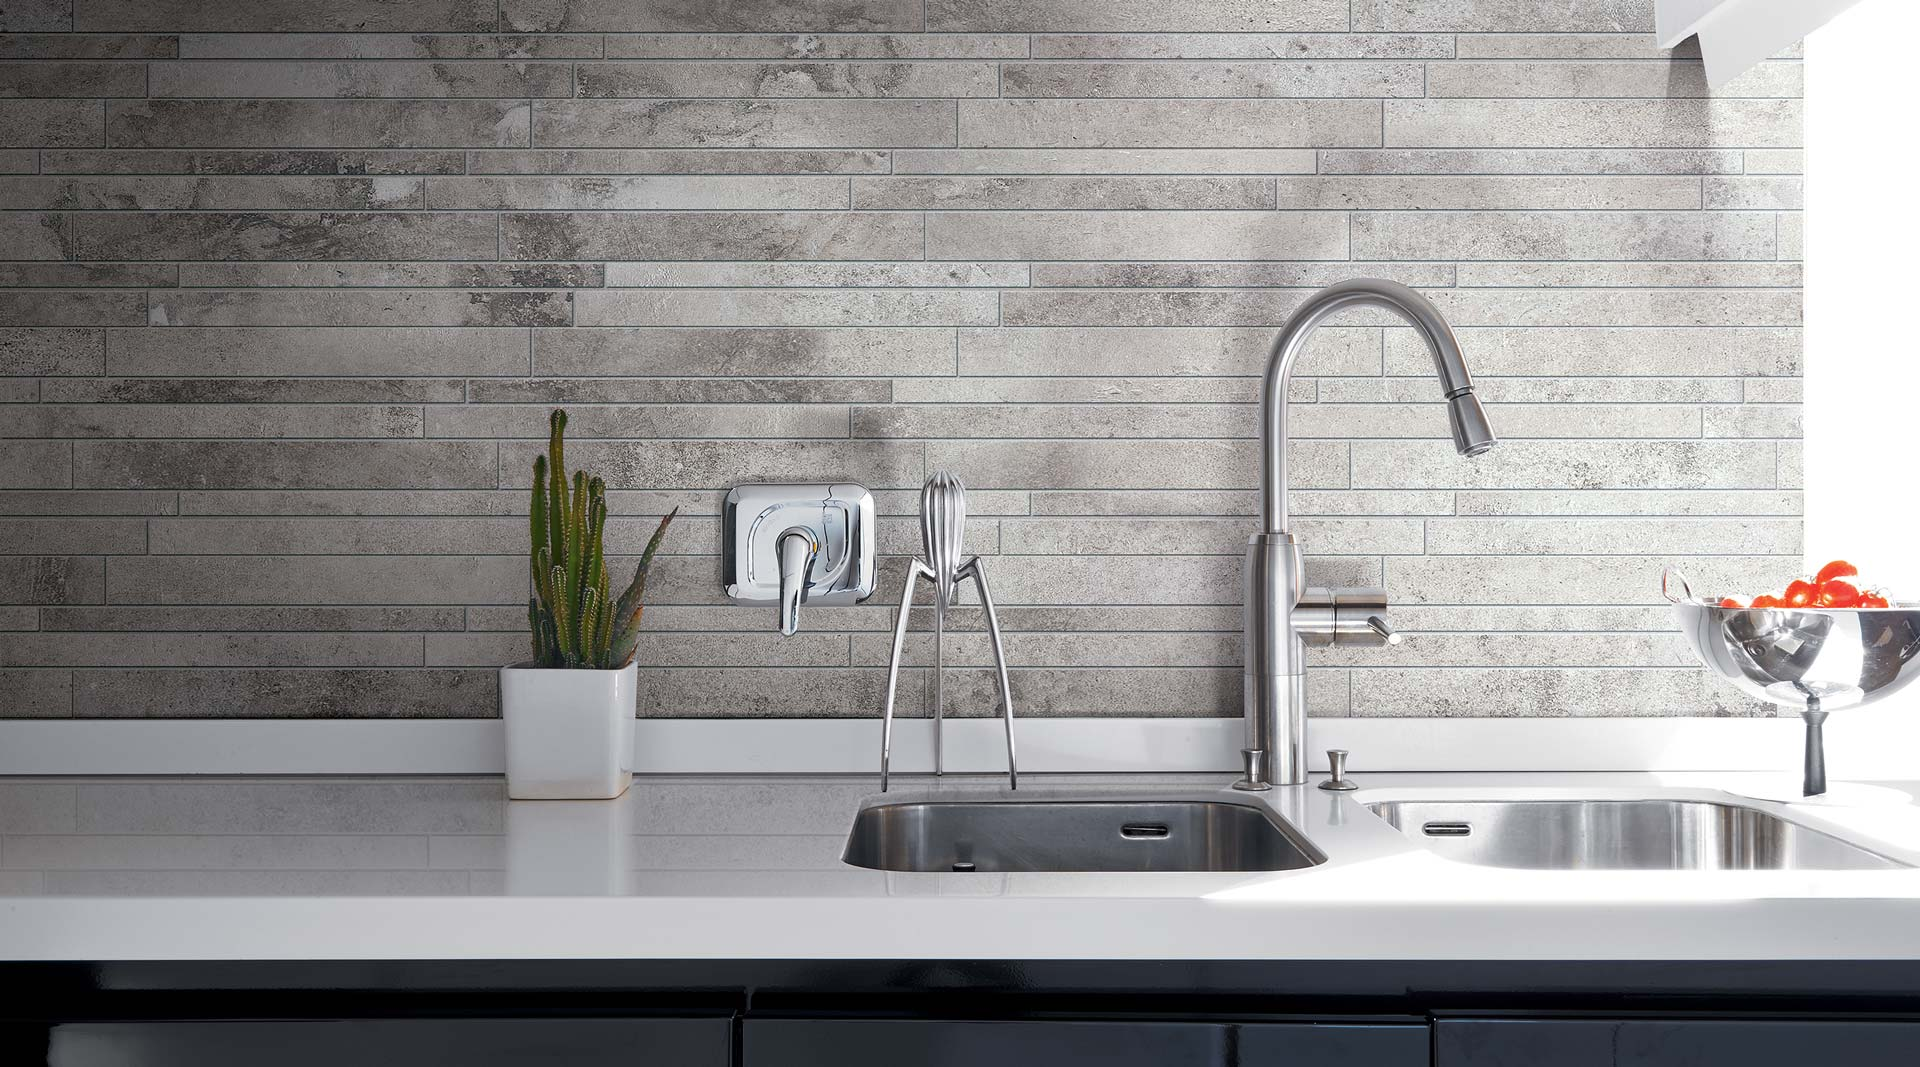 Kitchen Tiles Countertops Backsplashes Florim Ceramiche S P A